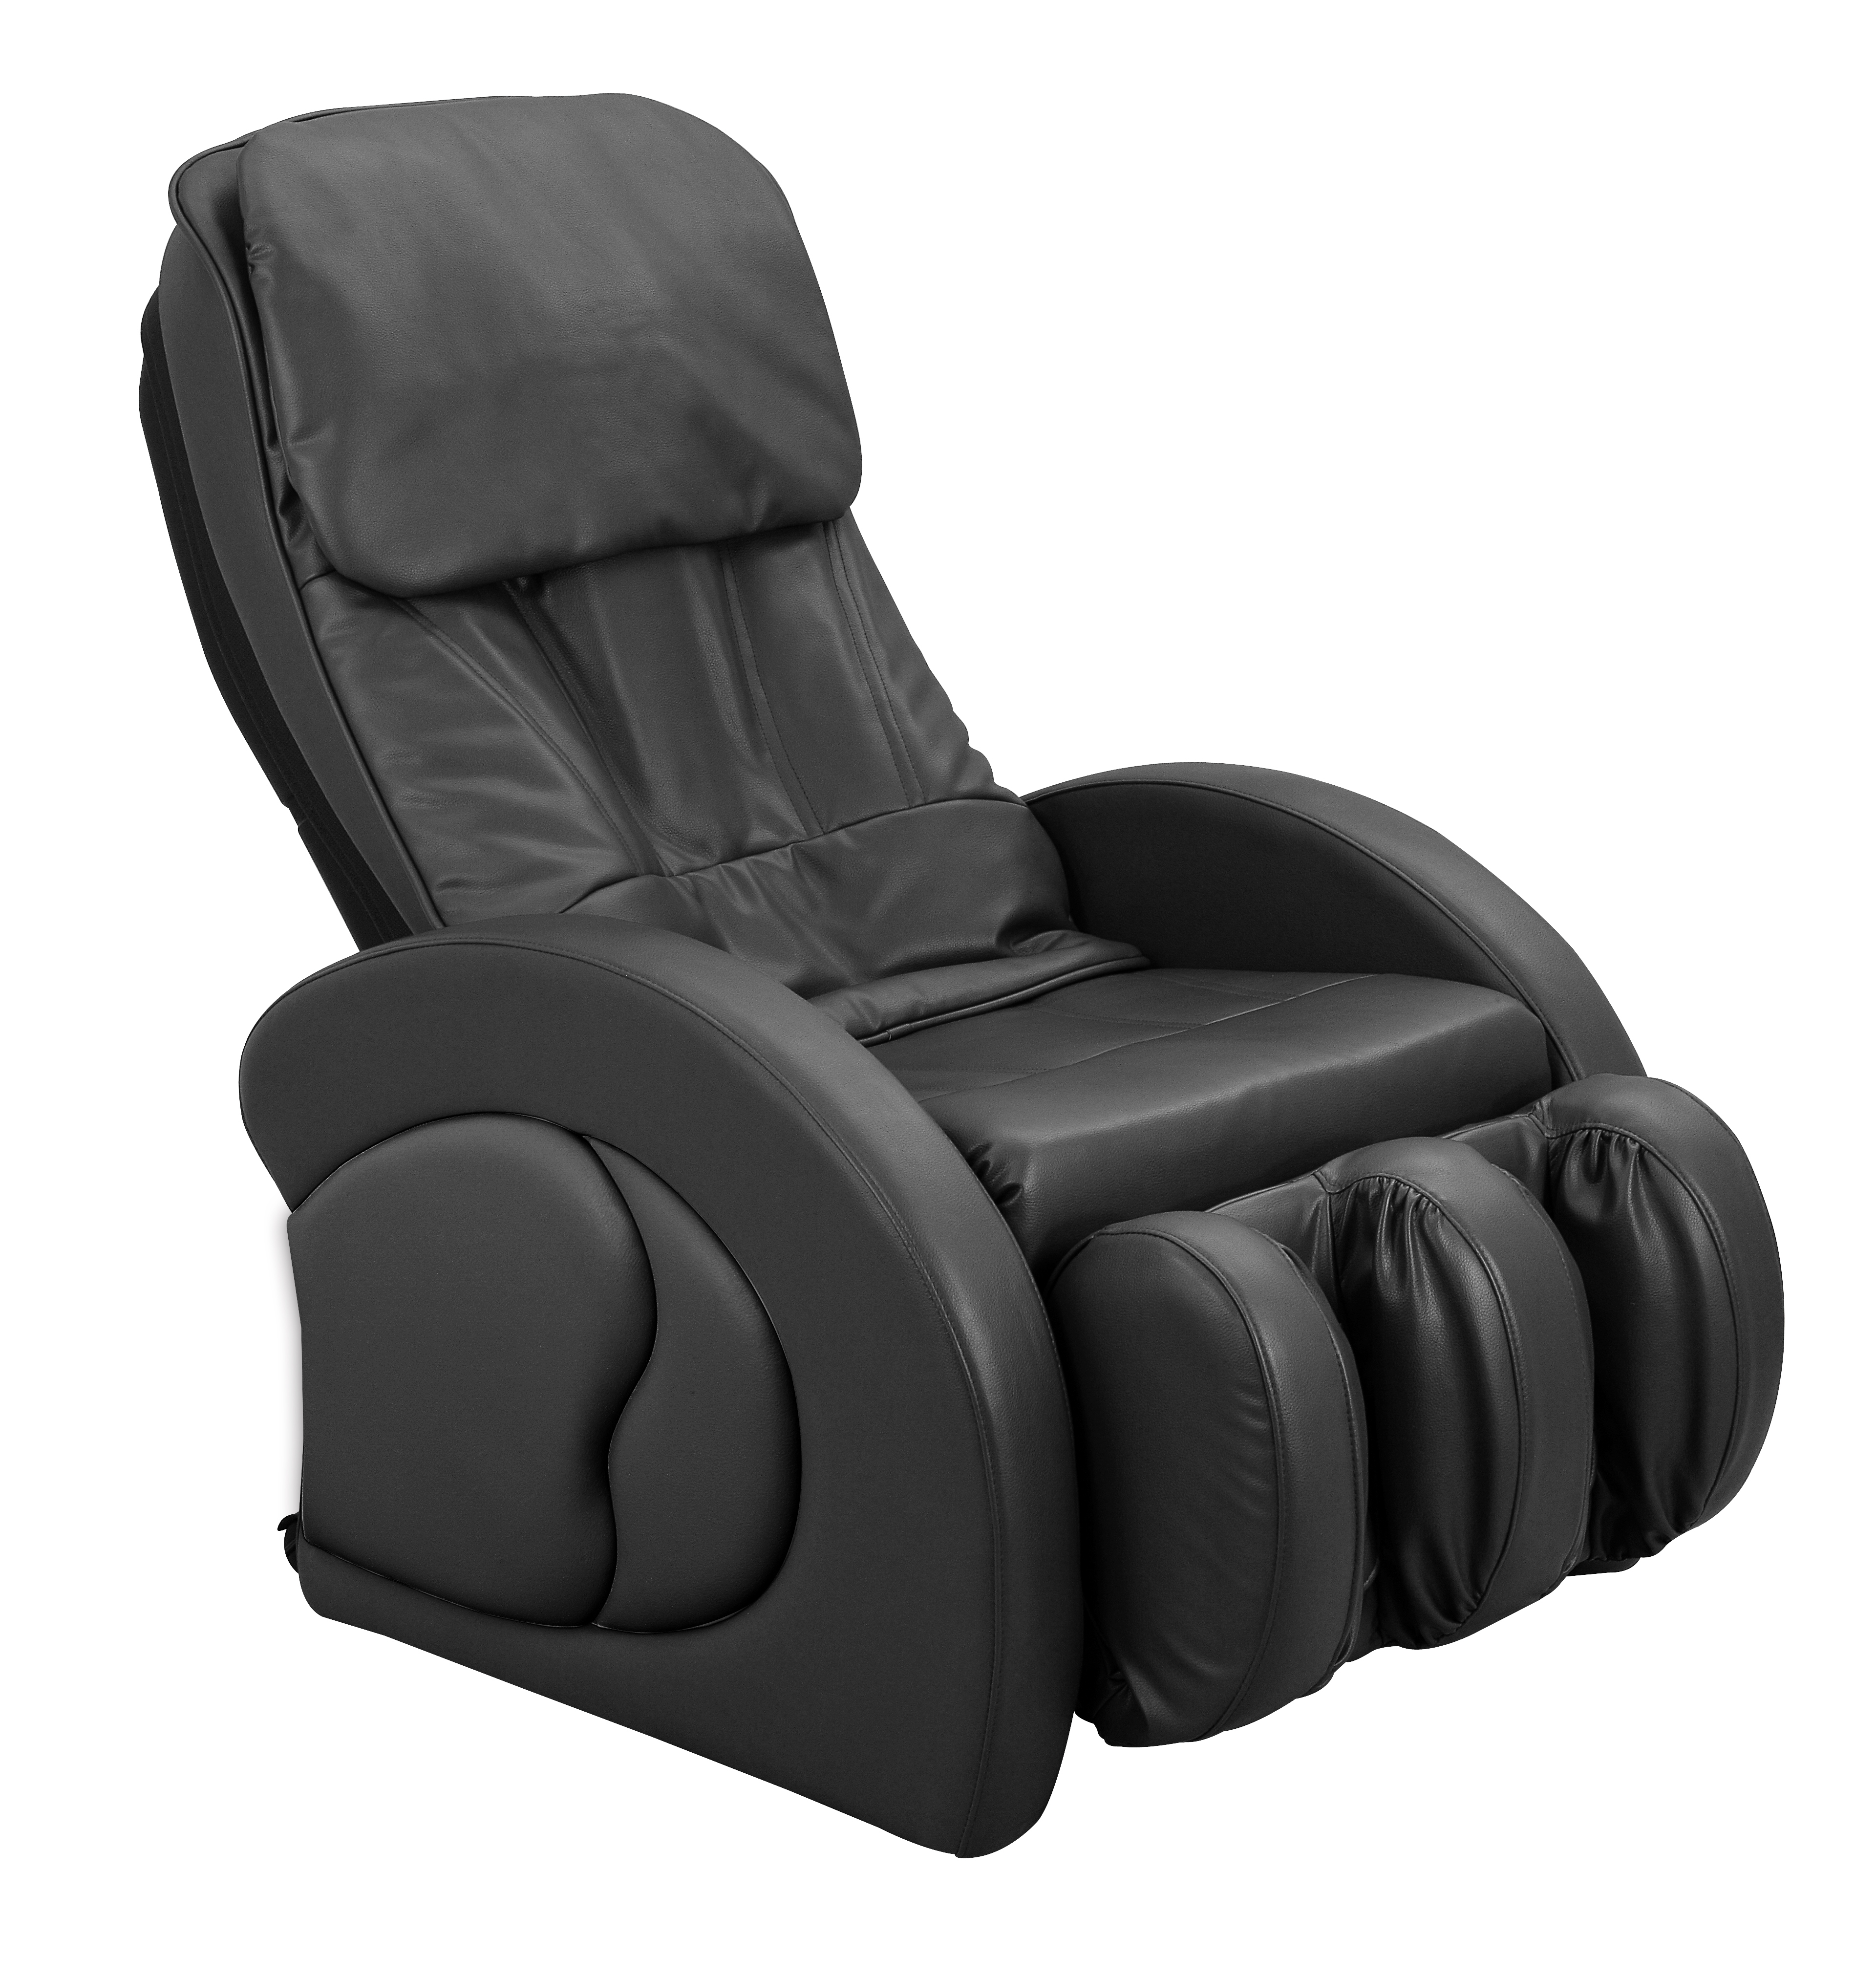 Ordinaire Relax Genie Home Massage Chair